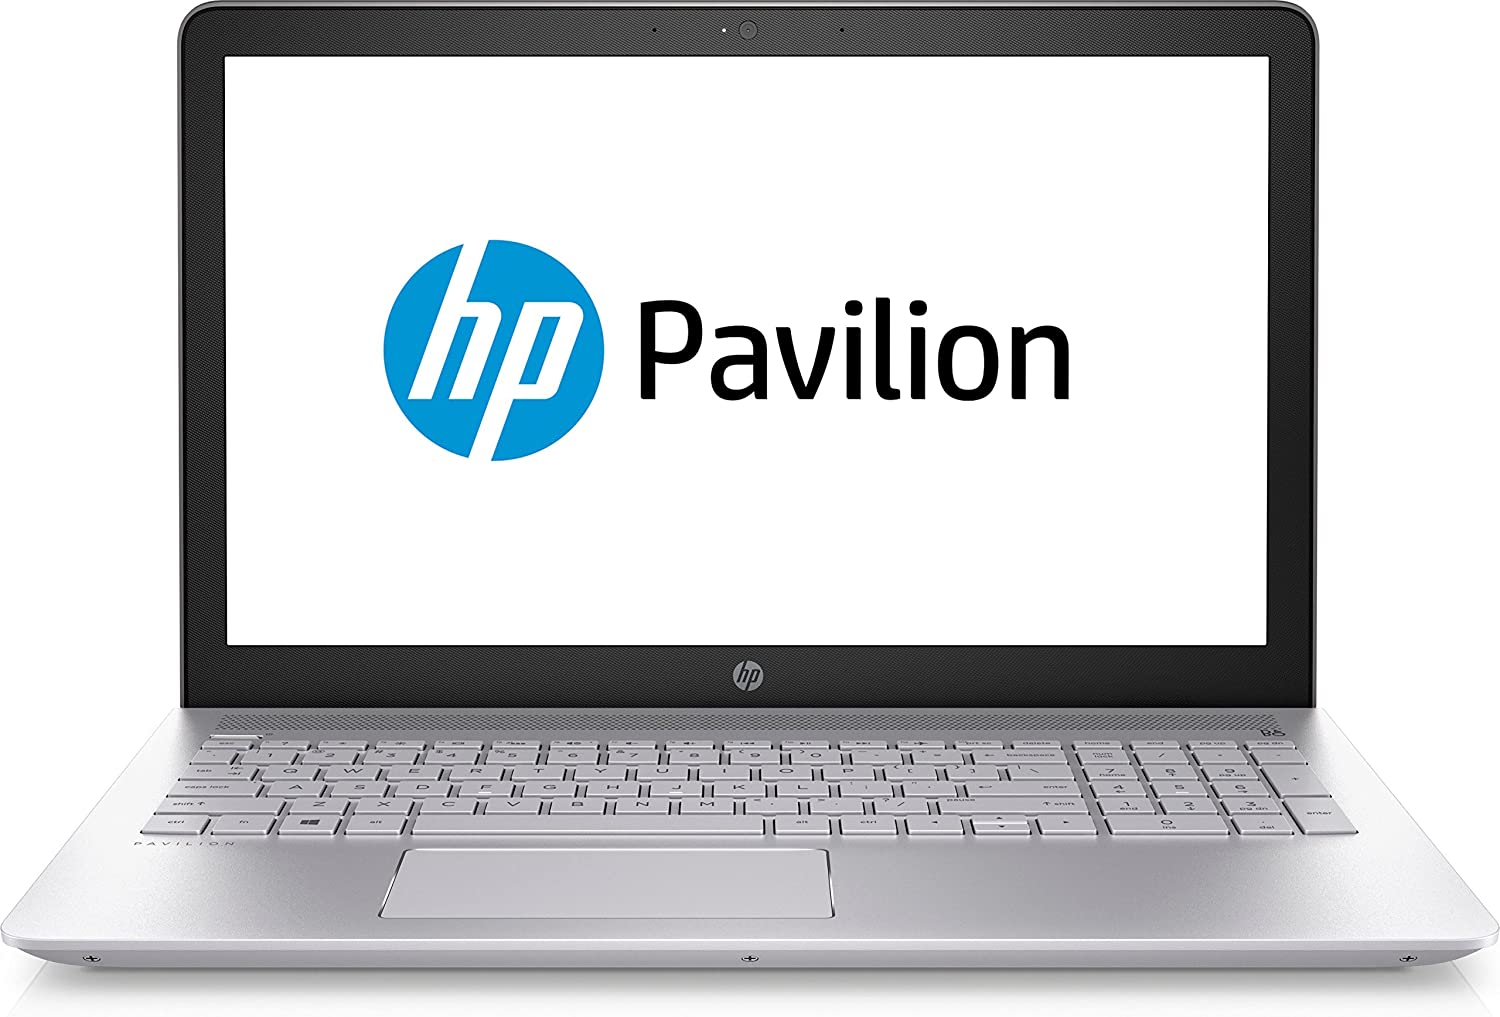 "2017 HP Pavilion Business Flagship Laptop PC 15.6"" Full HD IPS WLED-backlit Display Intel i7-7500U Processor 12GB DDR4 Memory 1TB HDD Backlit-Keyboard Bluetooth Webcam B&O Audio Windows 10-Gray"